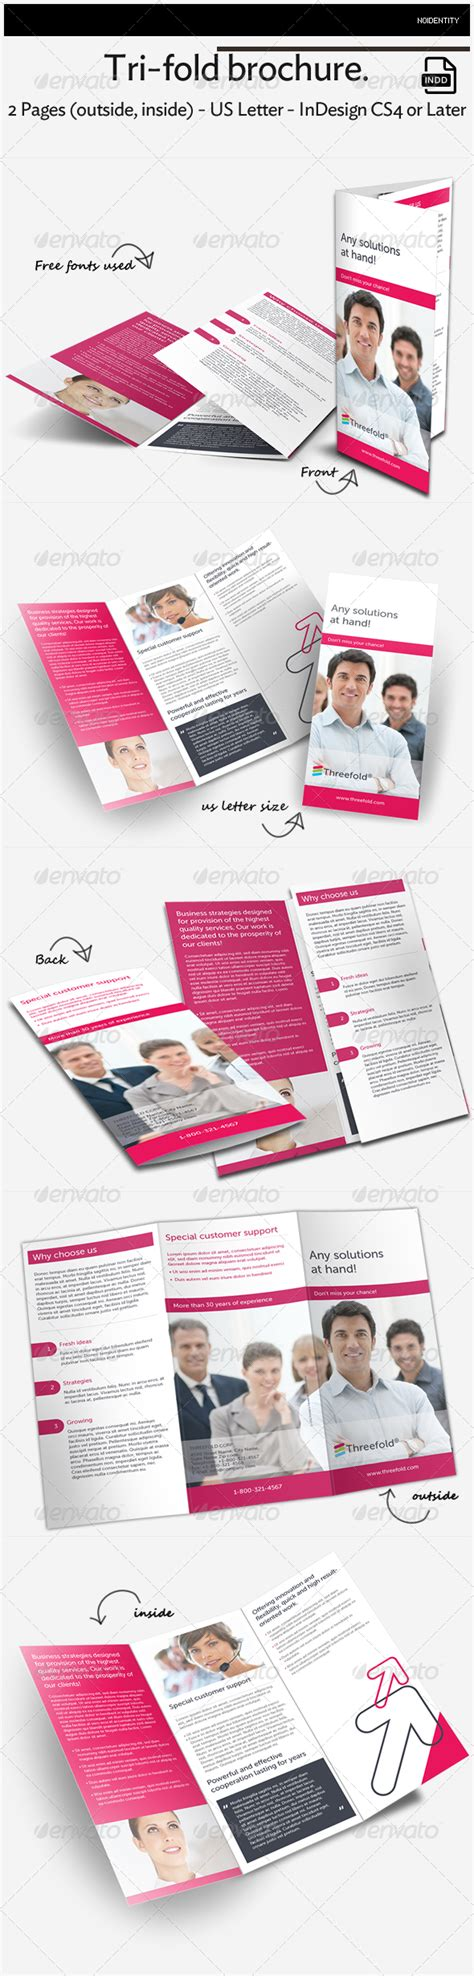 tri fold brochure template indesign cs6 multipurpose tri fold brochure graphicriver